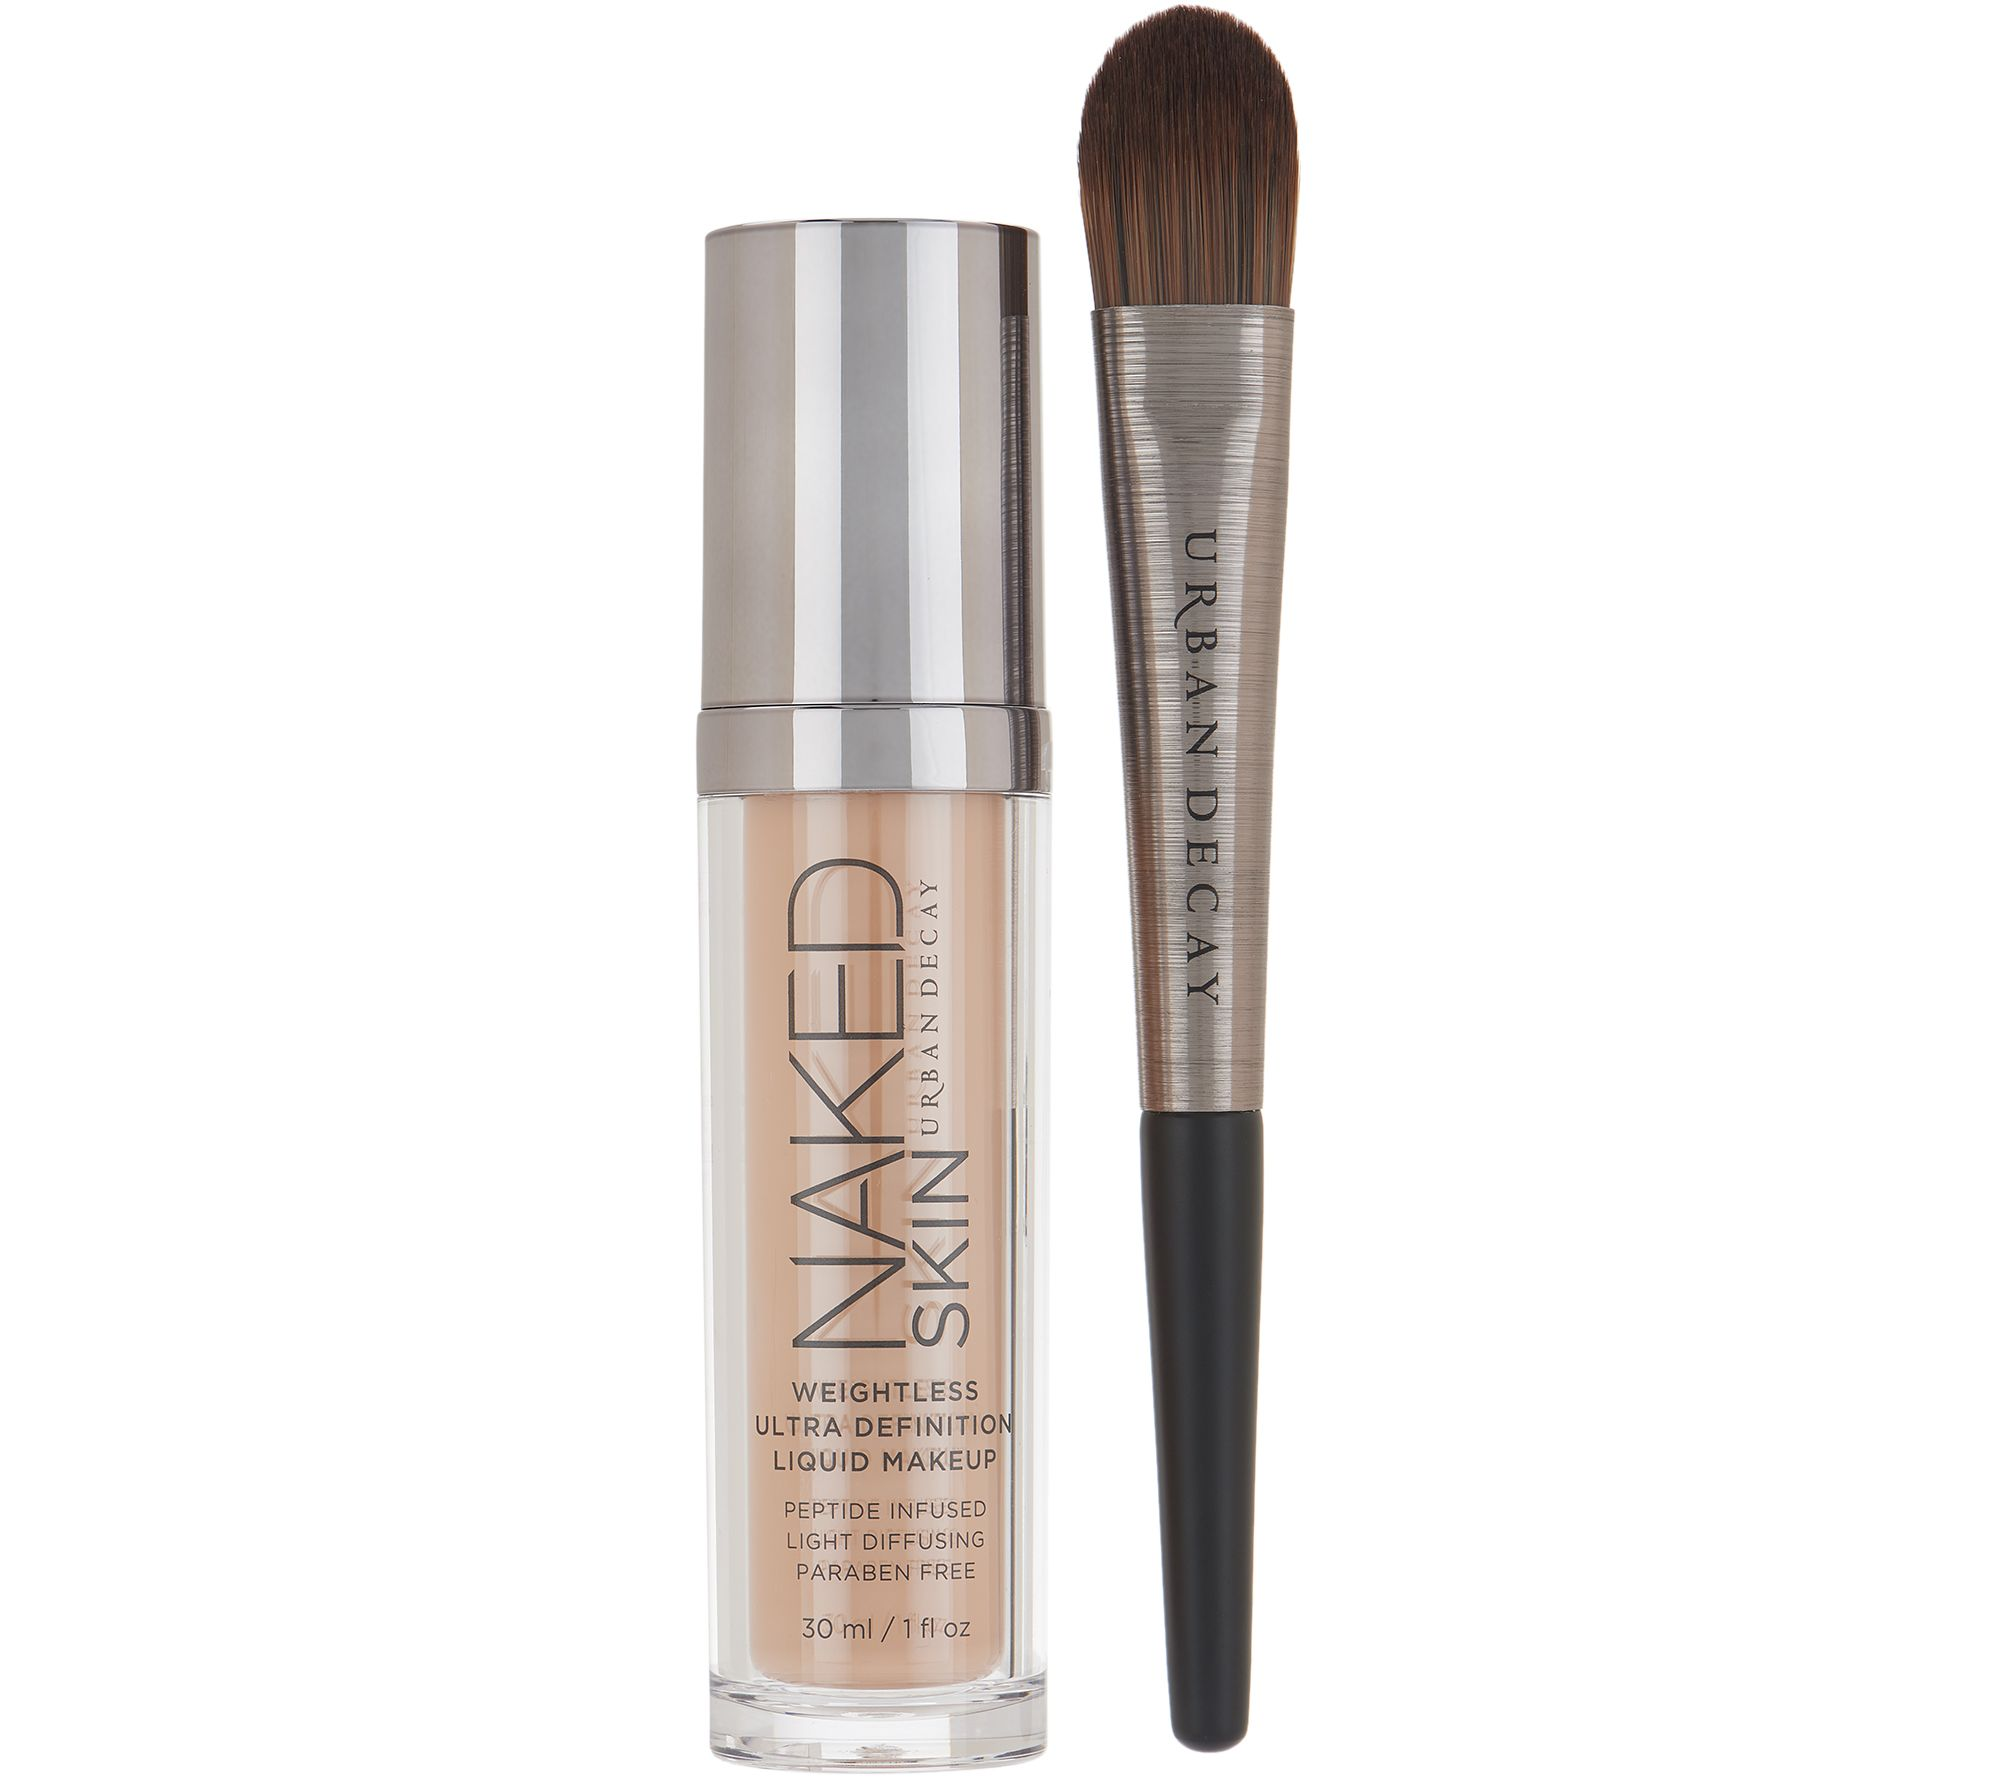 Pro Optical Blurring Brush by Urban Decay #5